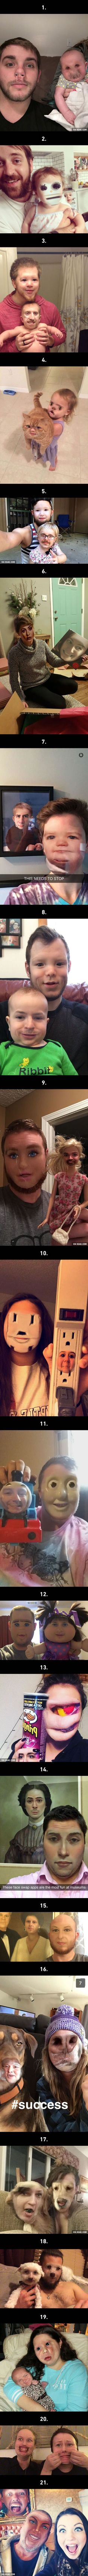 The Funniest And Scariest FaceSwaps